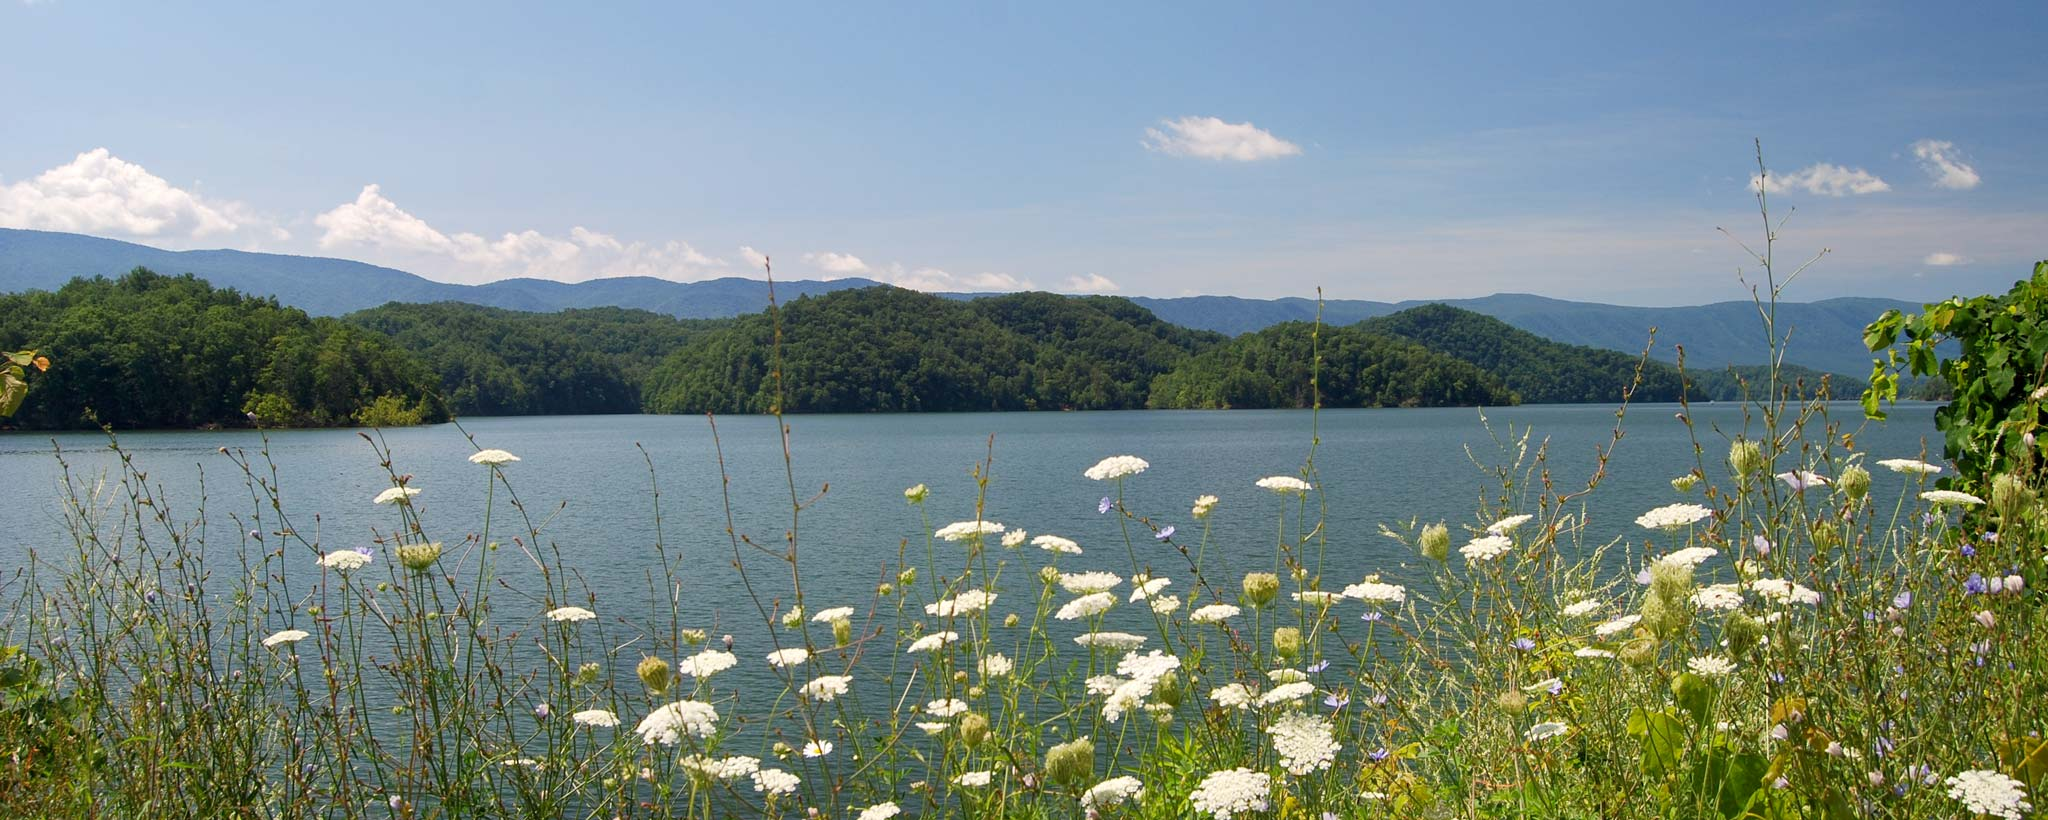 lake with flowers